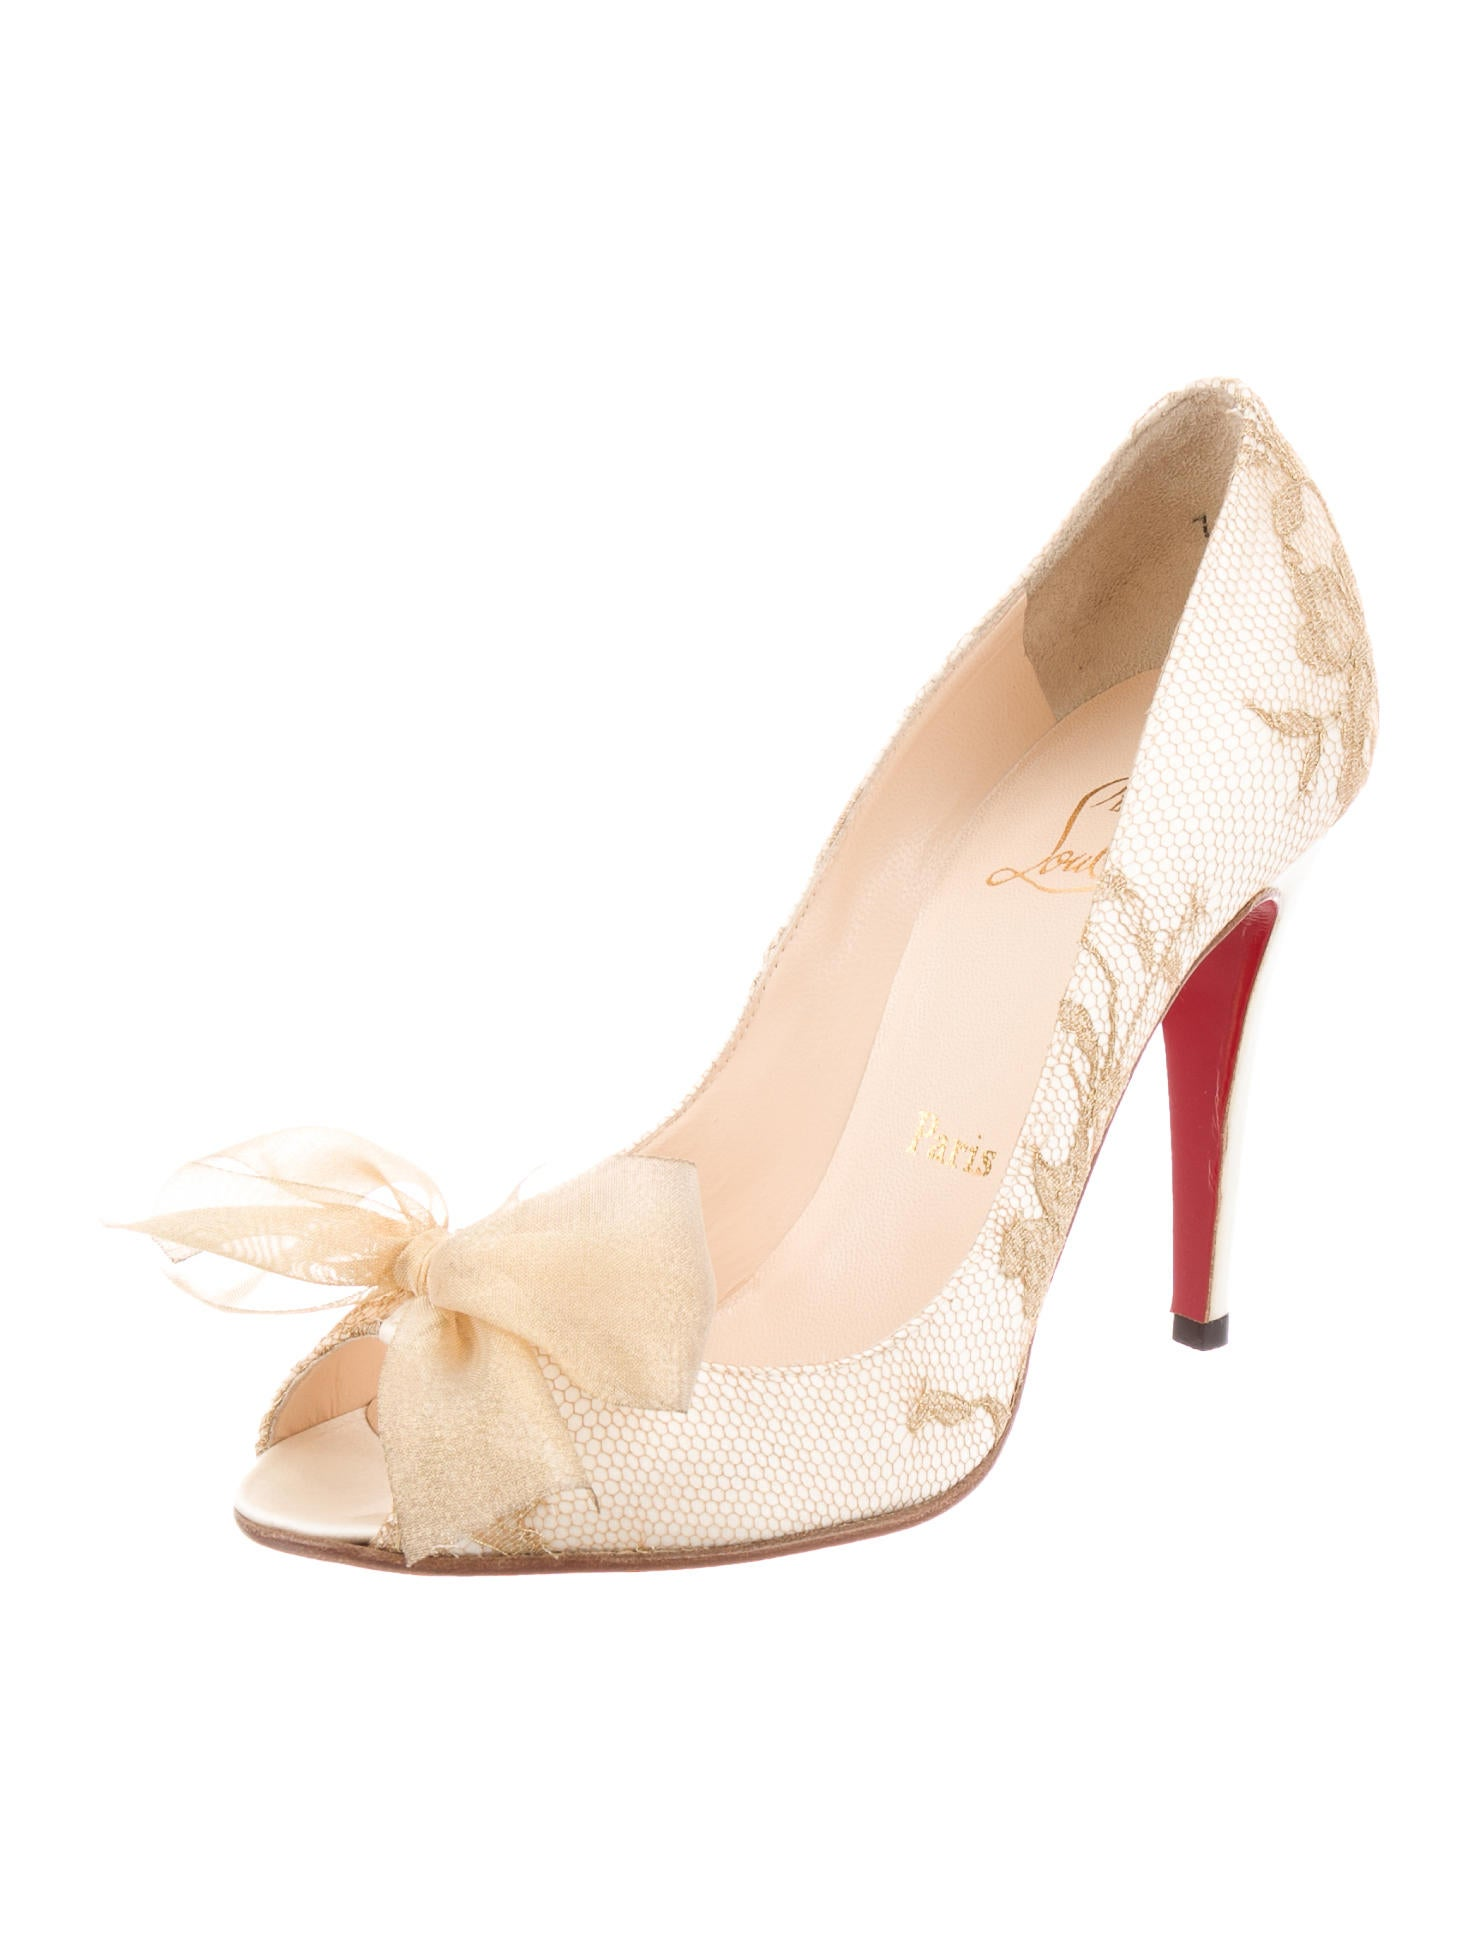 where to buy christian louboutin shoes - Christian Louboutin Bow-Embellished Lace Pumps - Shoes - CHT48508 ...